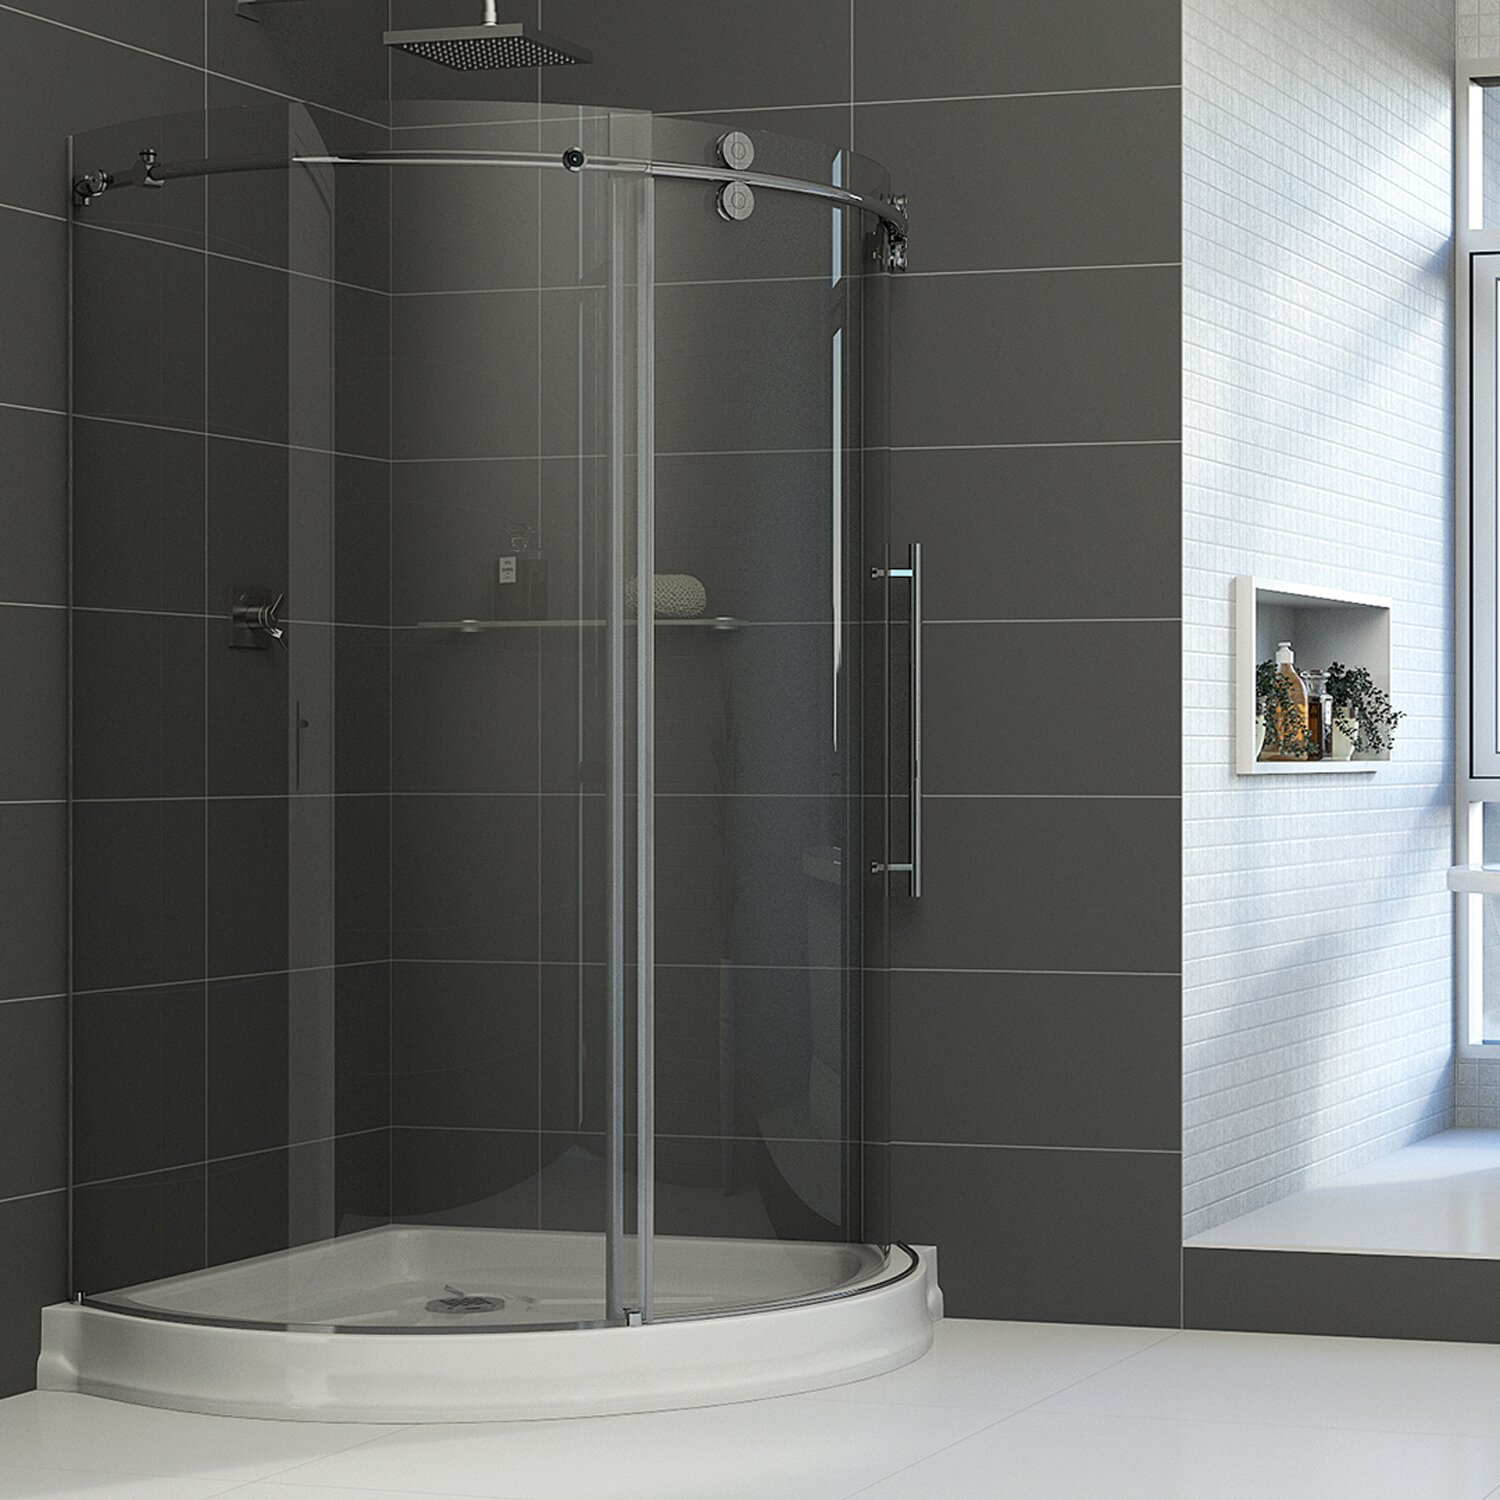 lowes frameless shower door basco shower doors delta shower doors bathroom luxurious design with lowes frameless - Delta Shower Doors